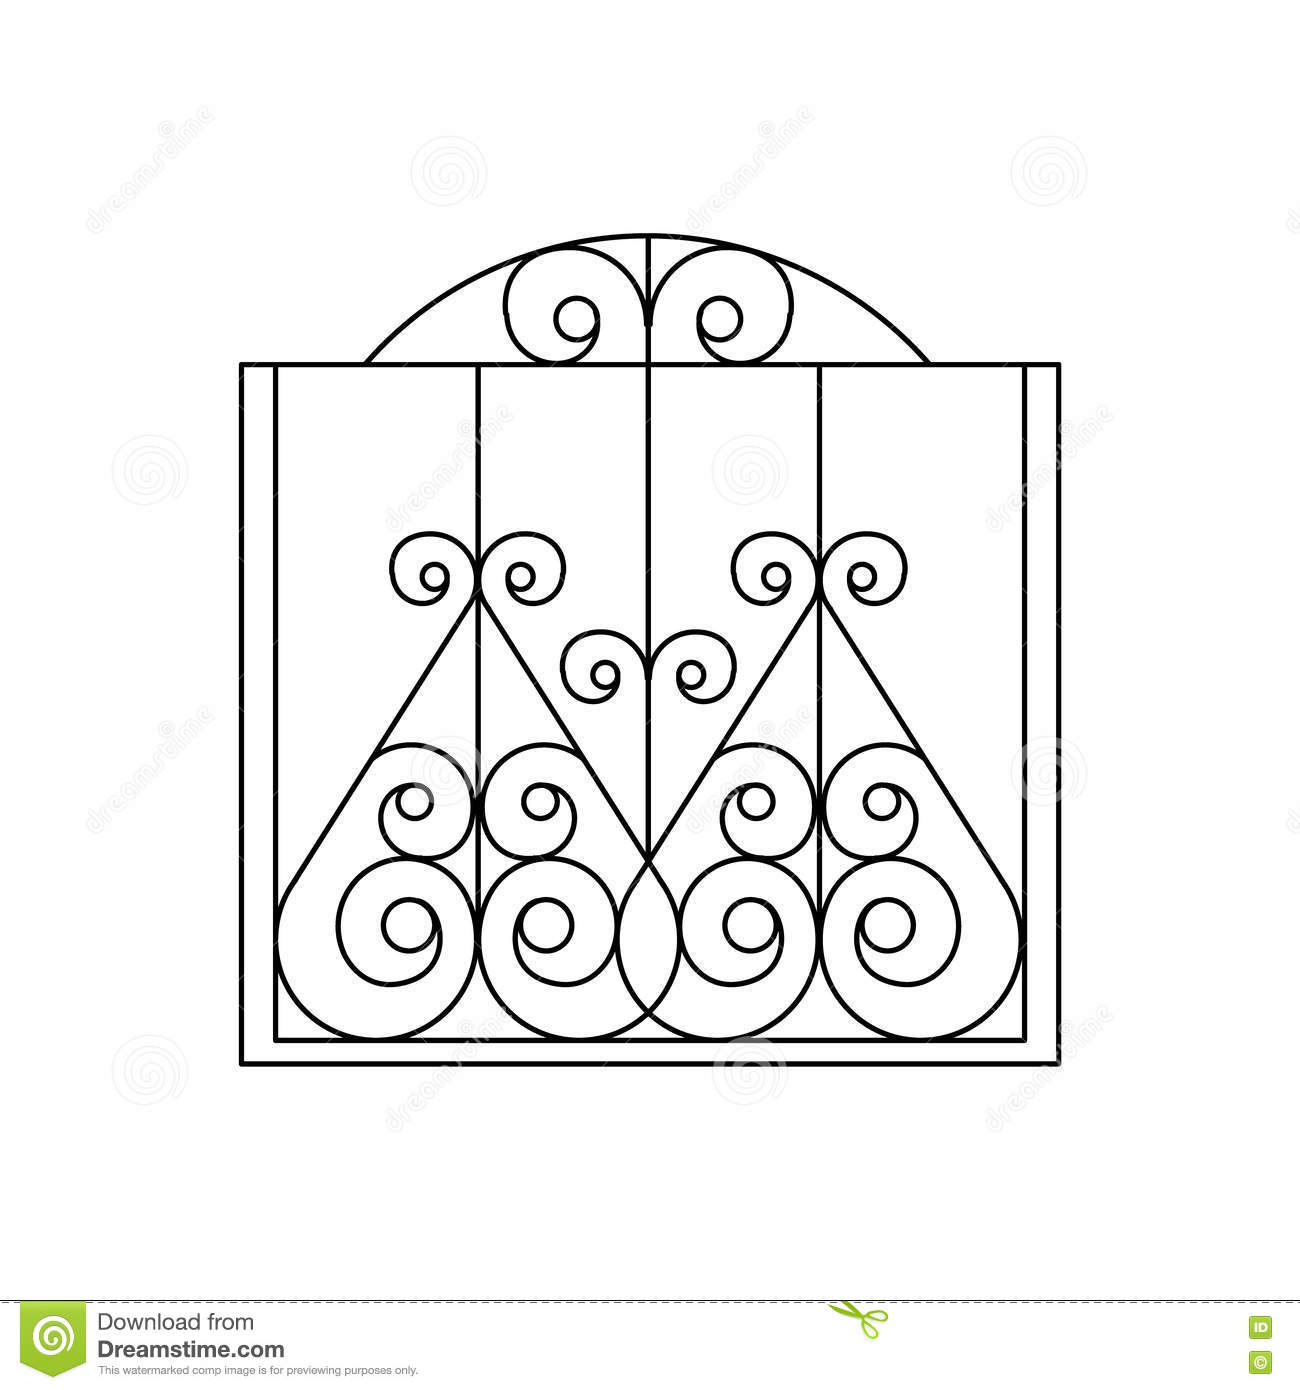 Curly Metal Lattice Fencing Design Stock Vector - Illustration of ...